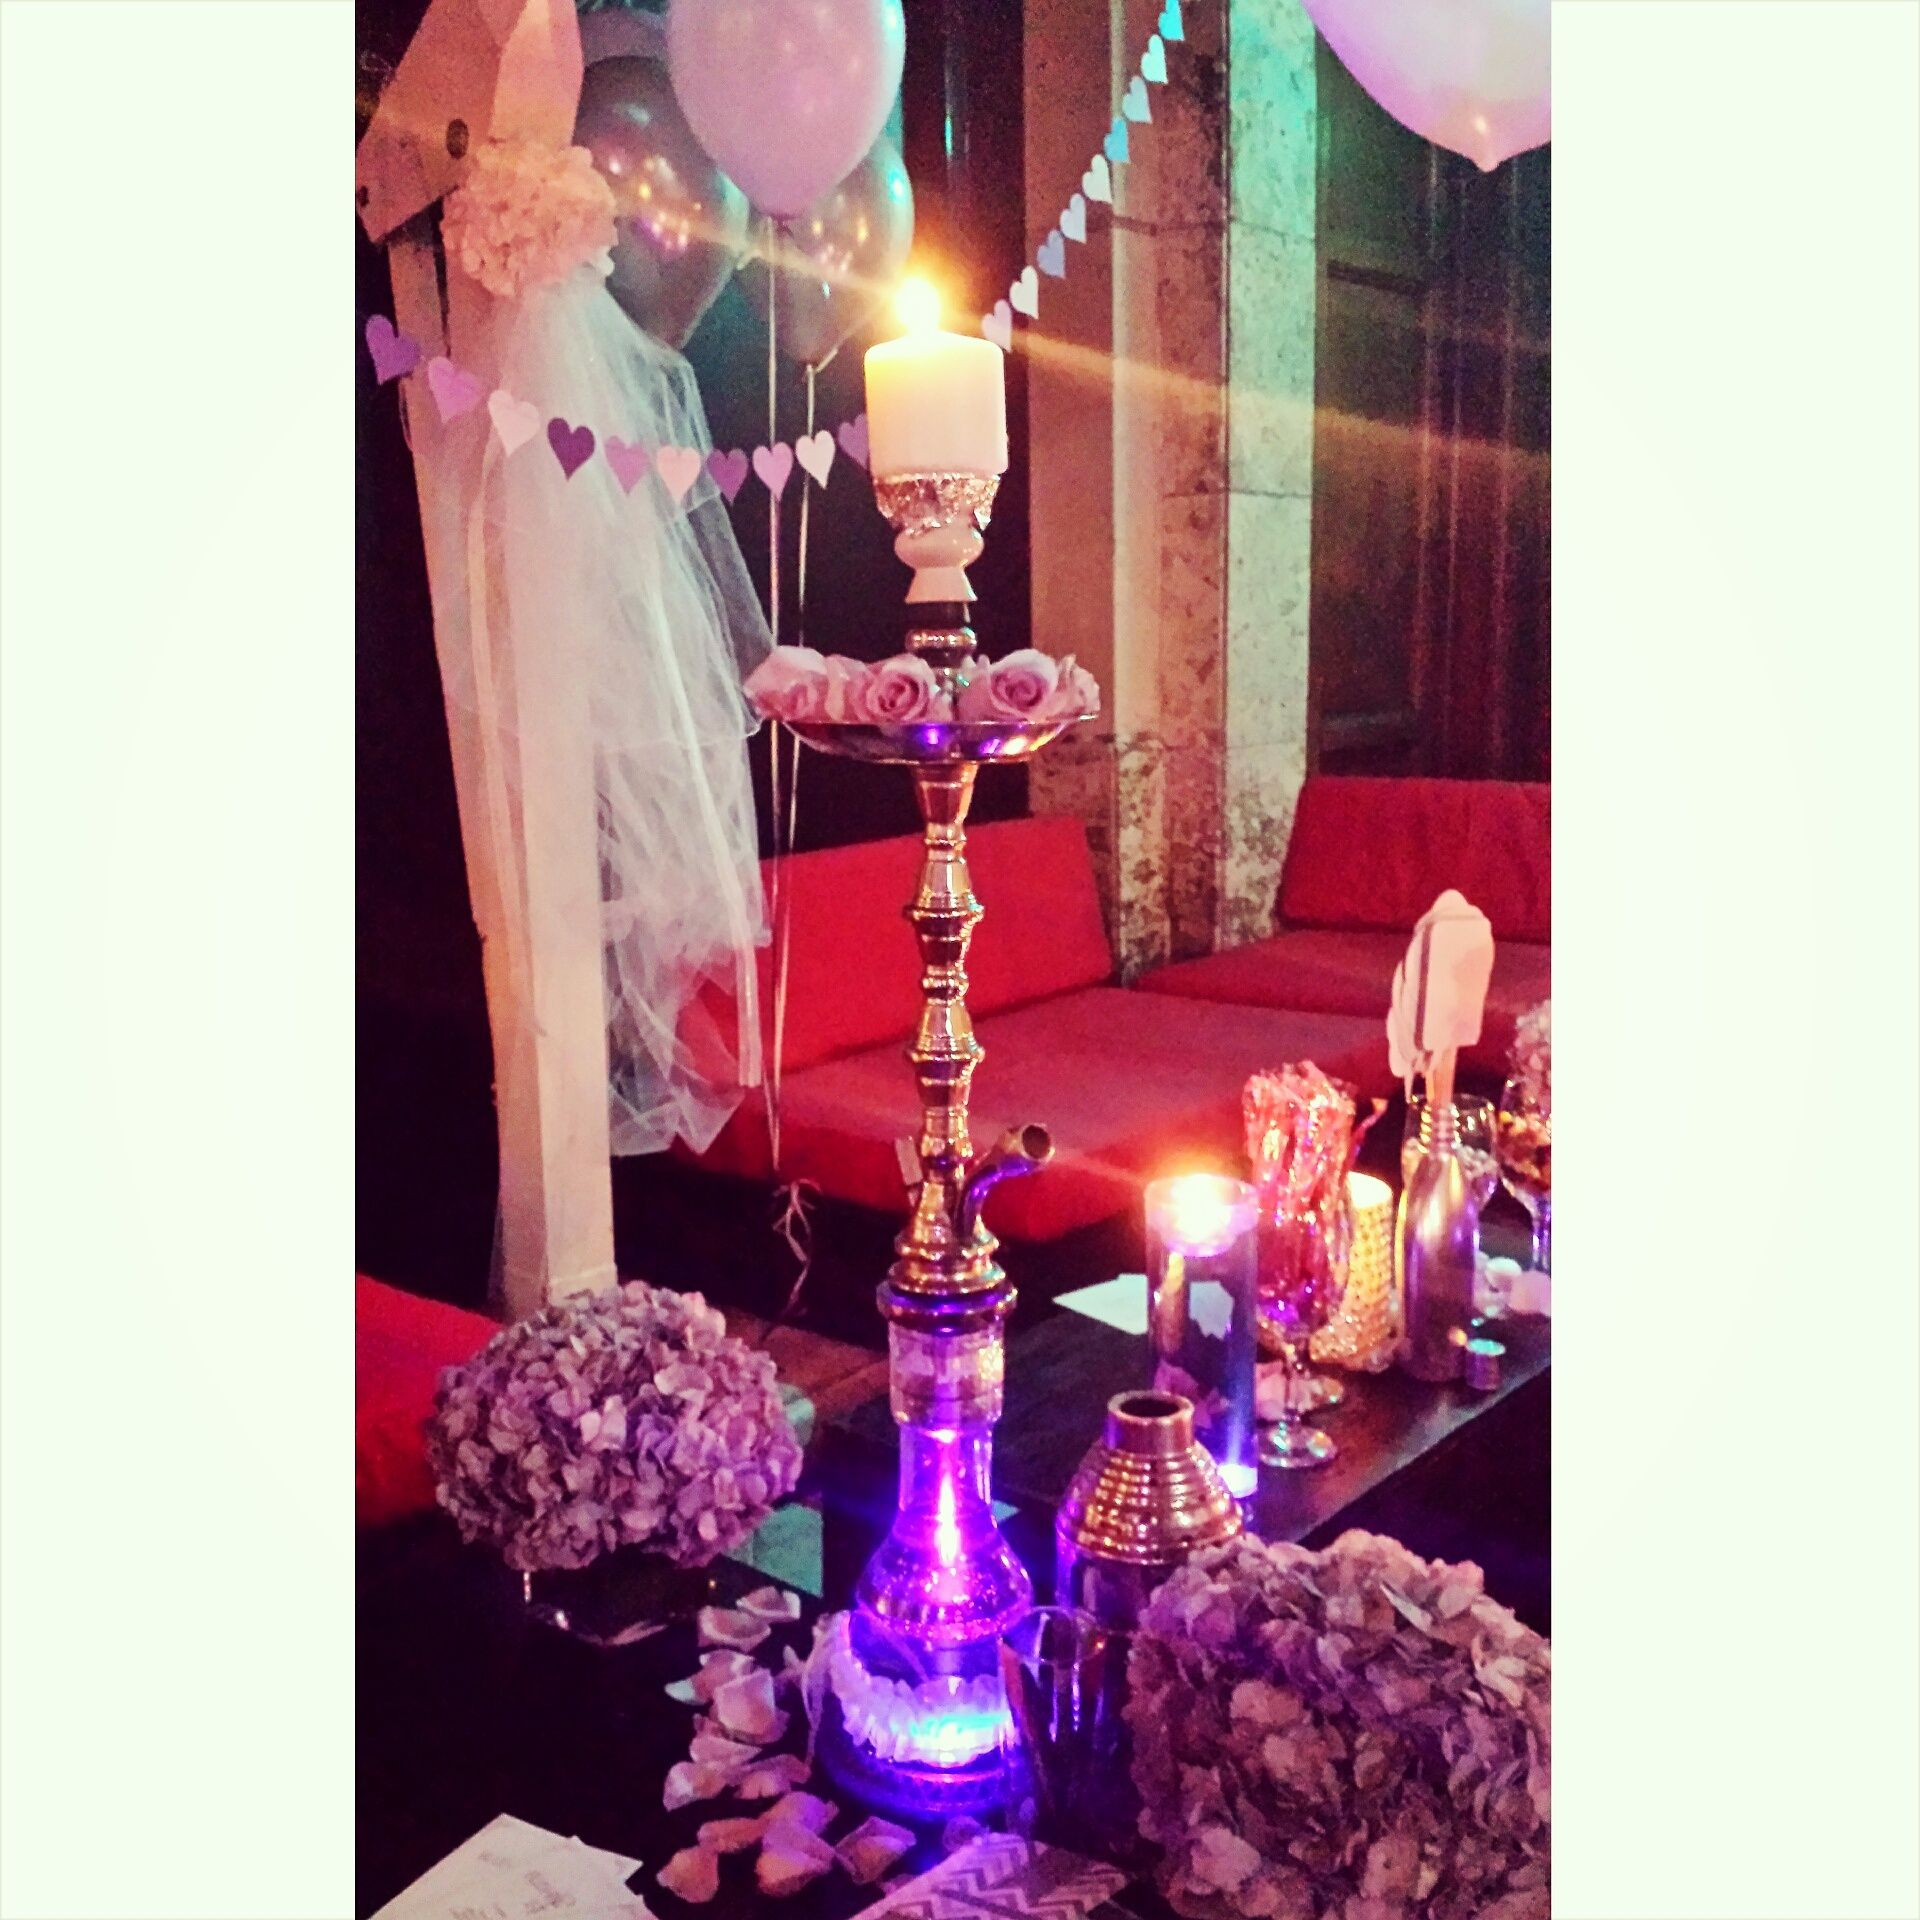 Hookah Party Centerpiece With Roses Candle Purple Water Purple Underwater Led Light At Sawa Sweet Sixteen Centerpieces Underwater Led Lights Bridal Shower